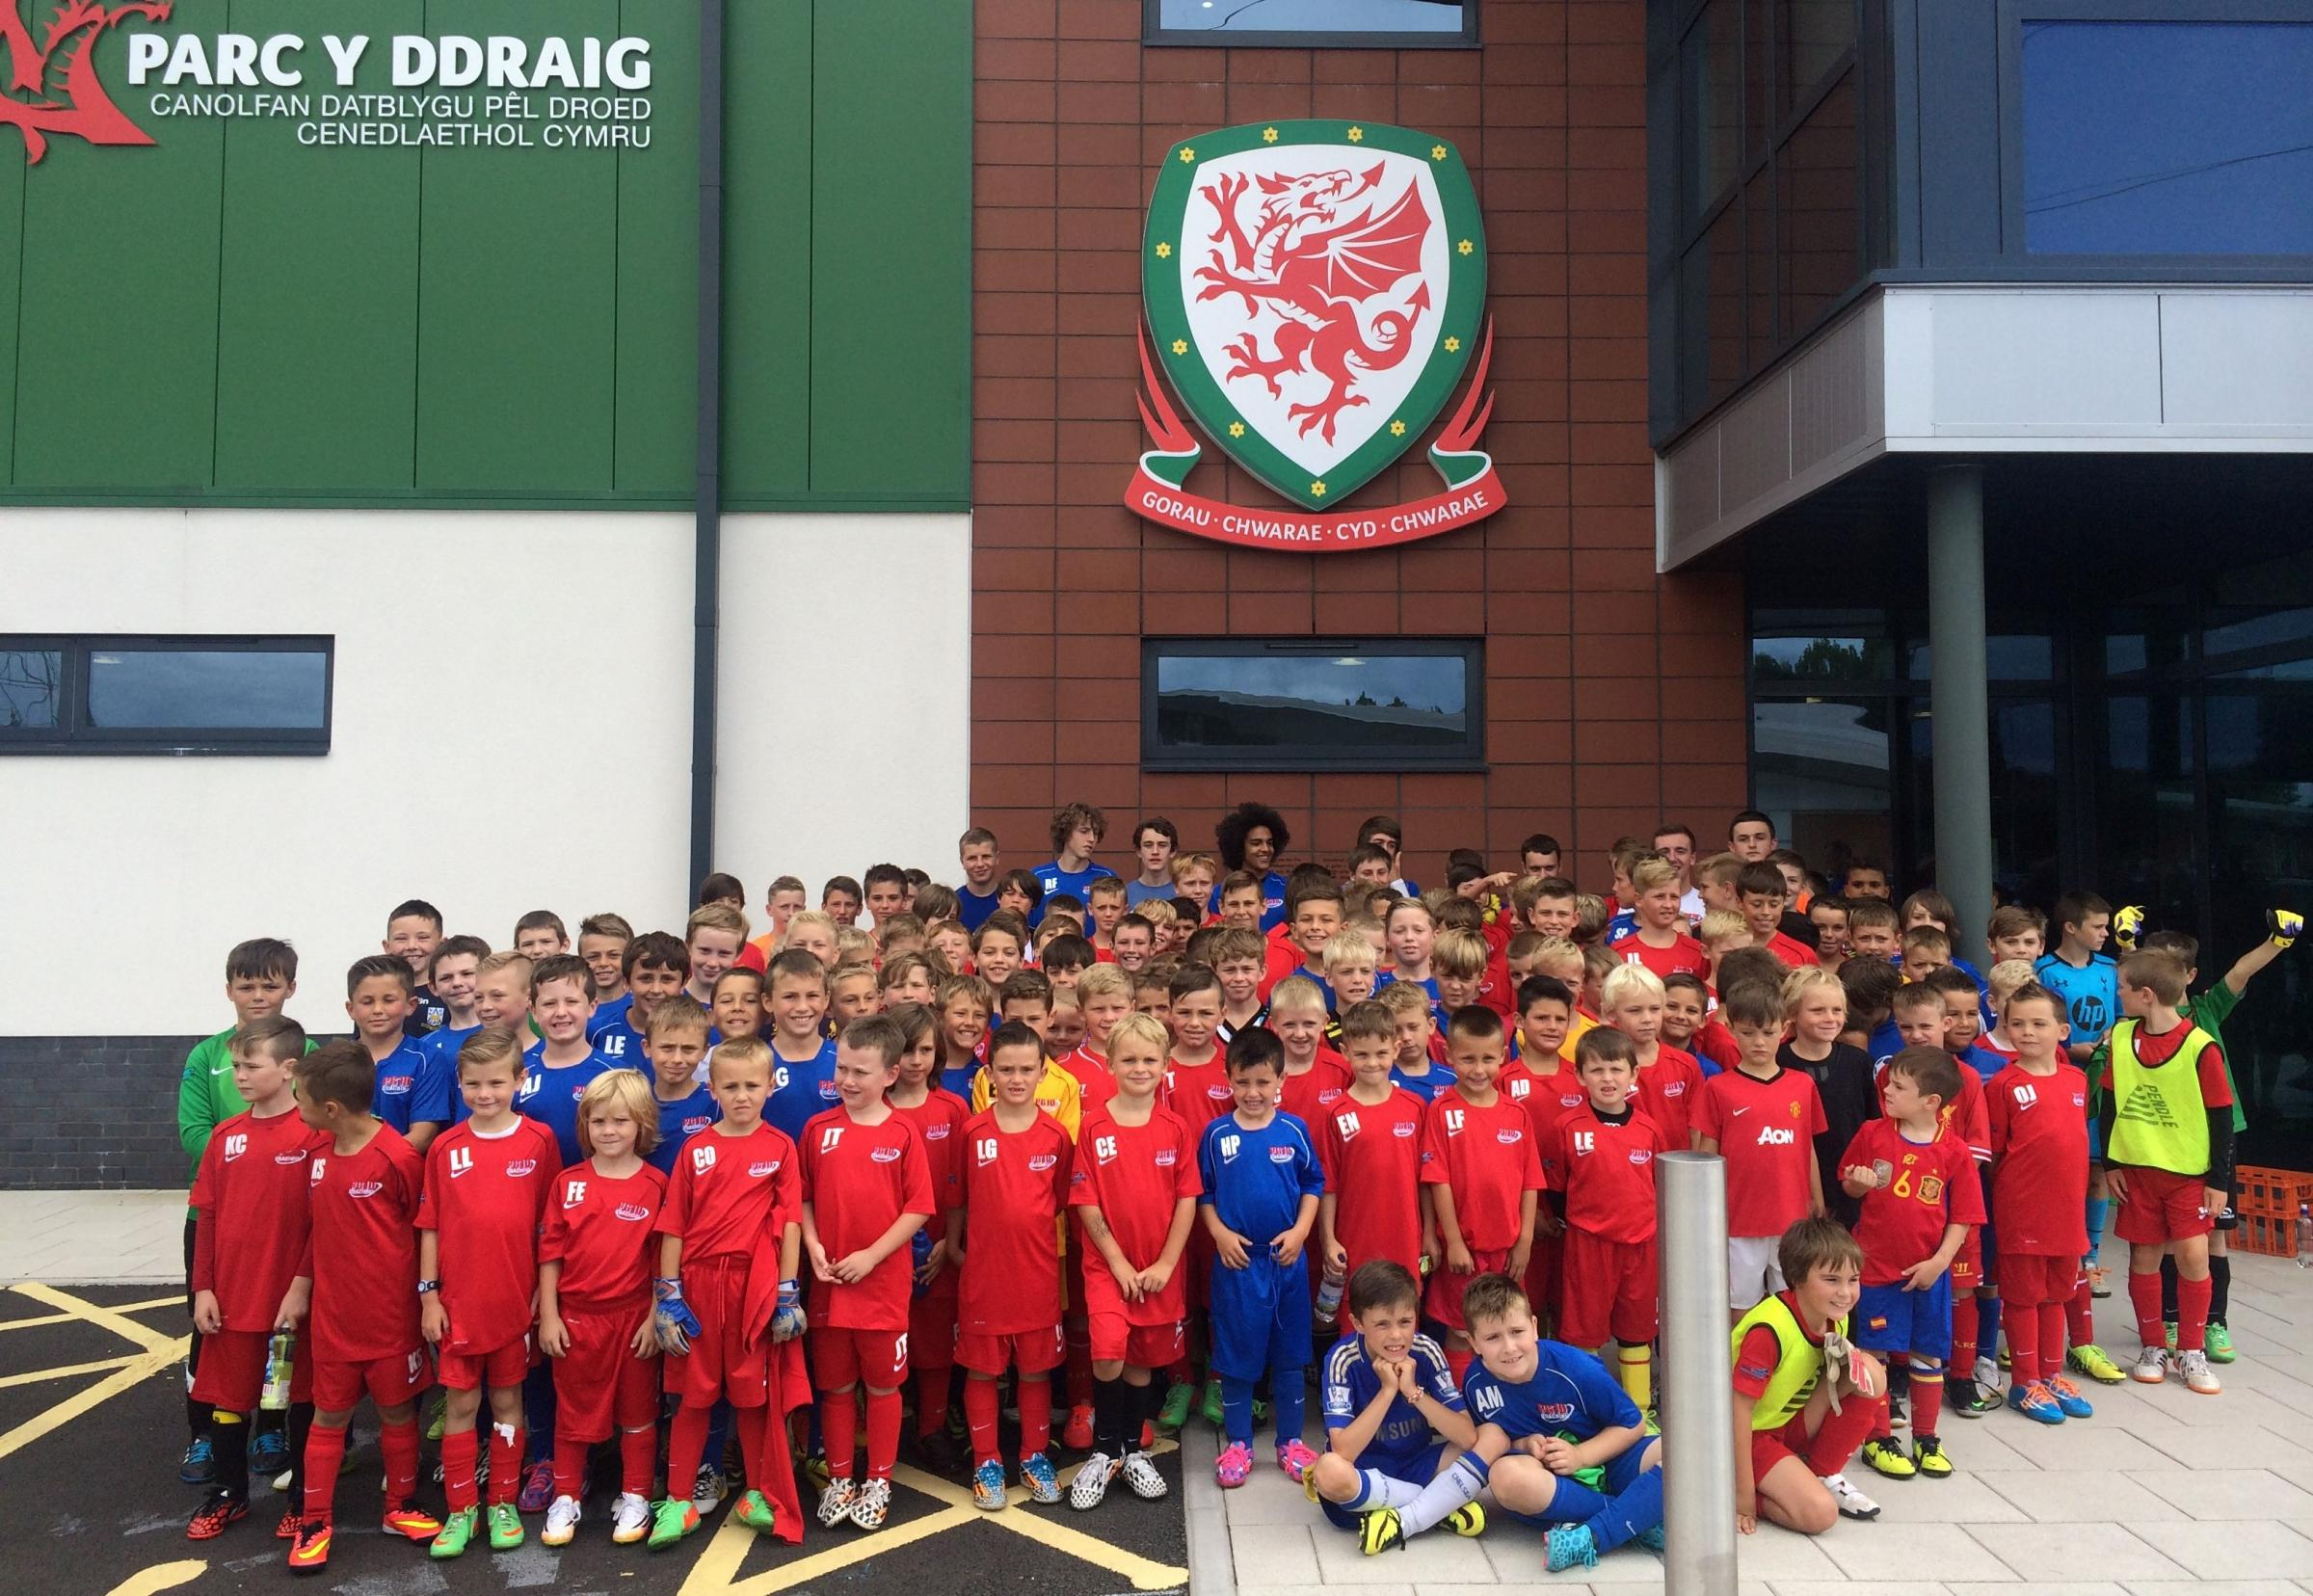 TRAINING: PG10 players at FAW Dragon Park